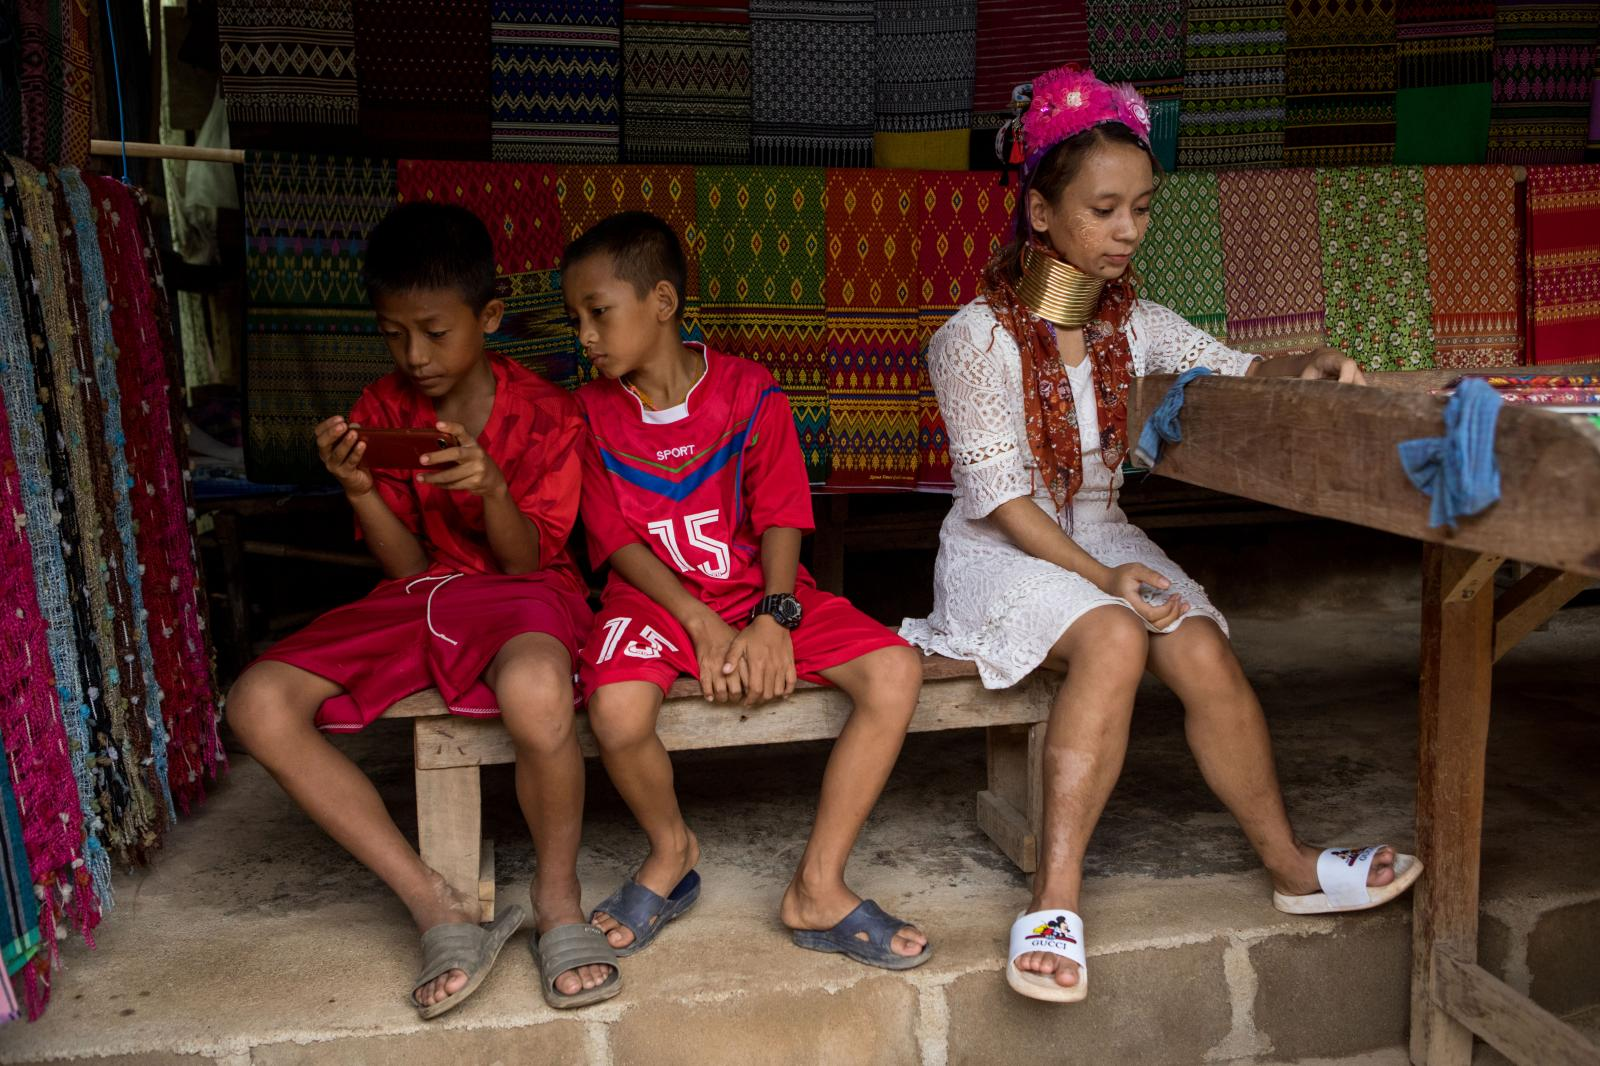 Mae Hong Son, Thailand � October 6, 2020 : Ma Nay, 20, plays on her phone next to her cousin (center) and his friend (left). The long neck village of Huai Suea Tao. Credit: Amanda Mustard for New York Times